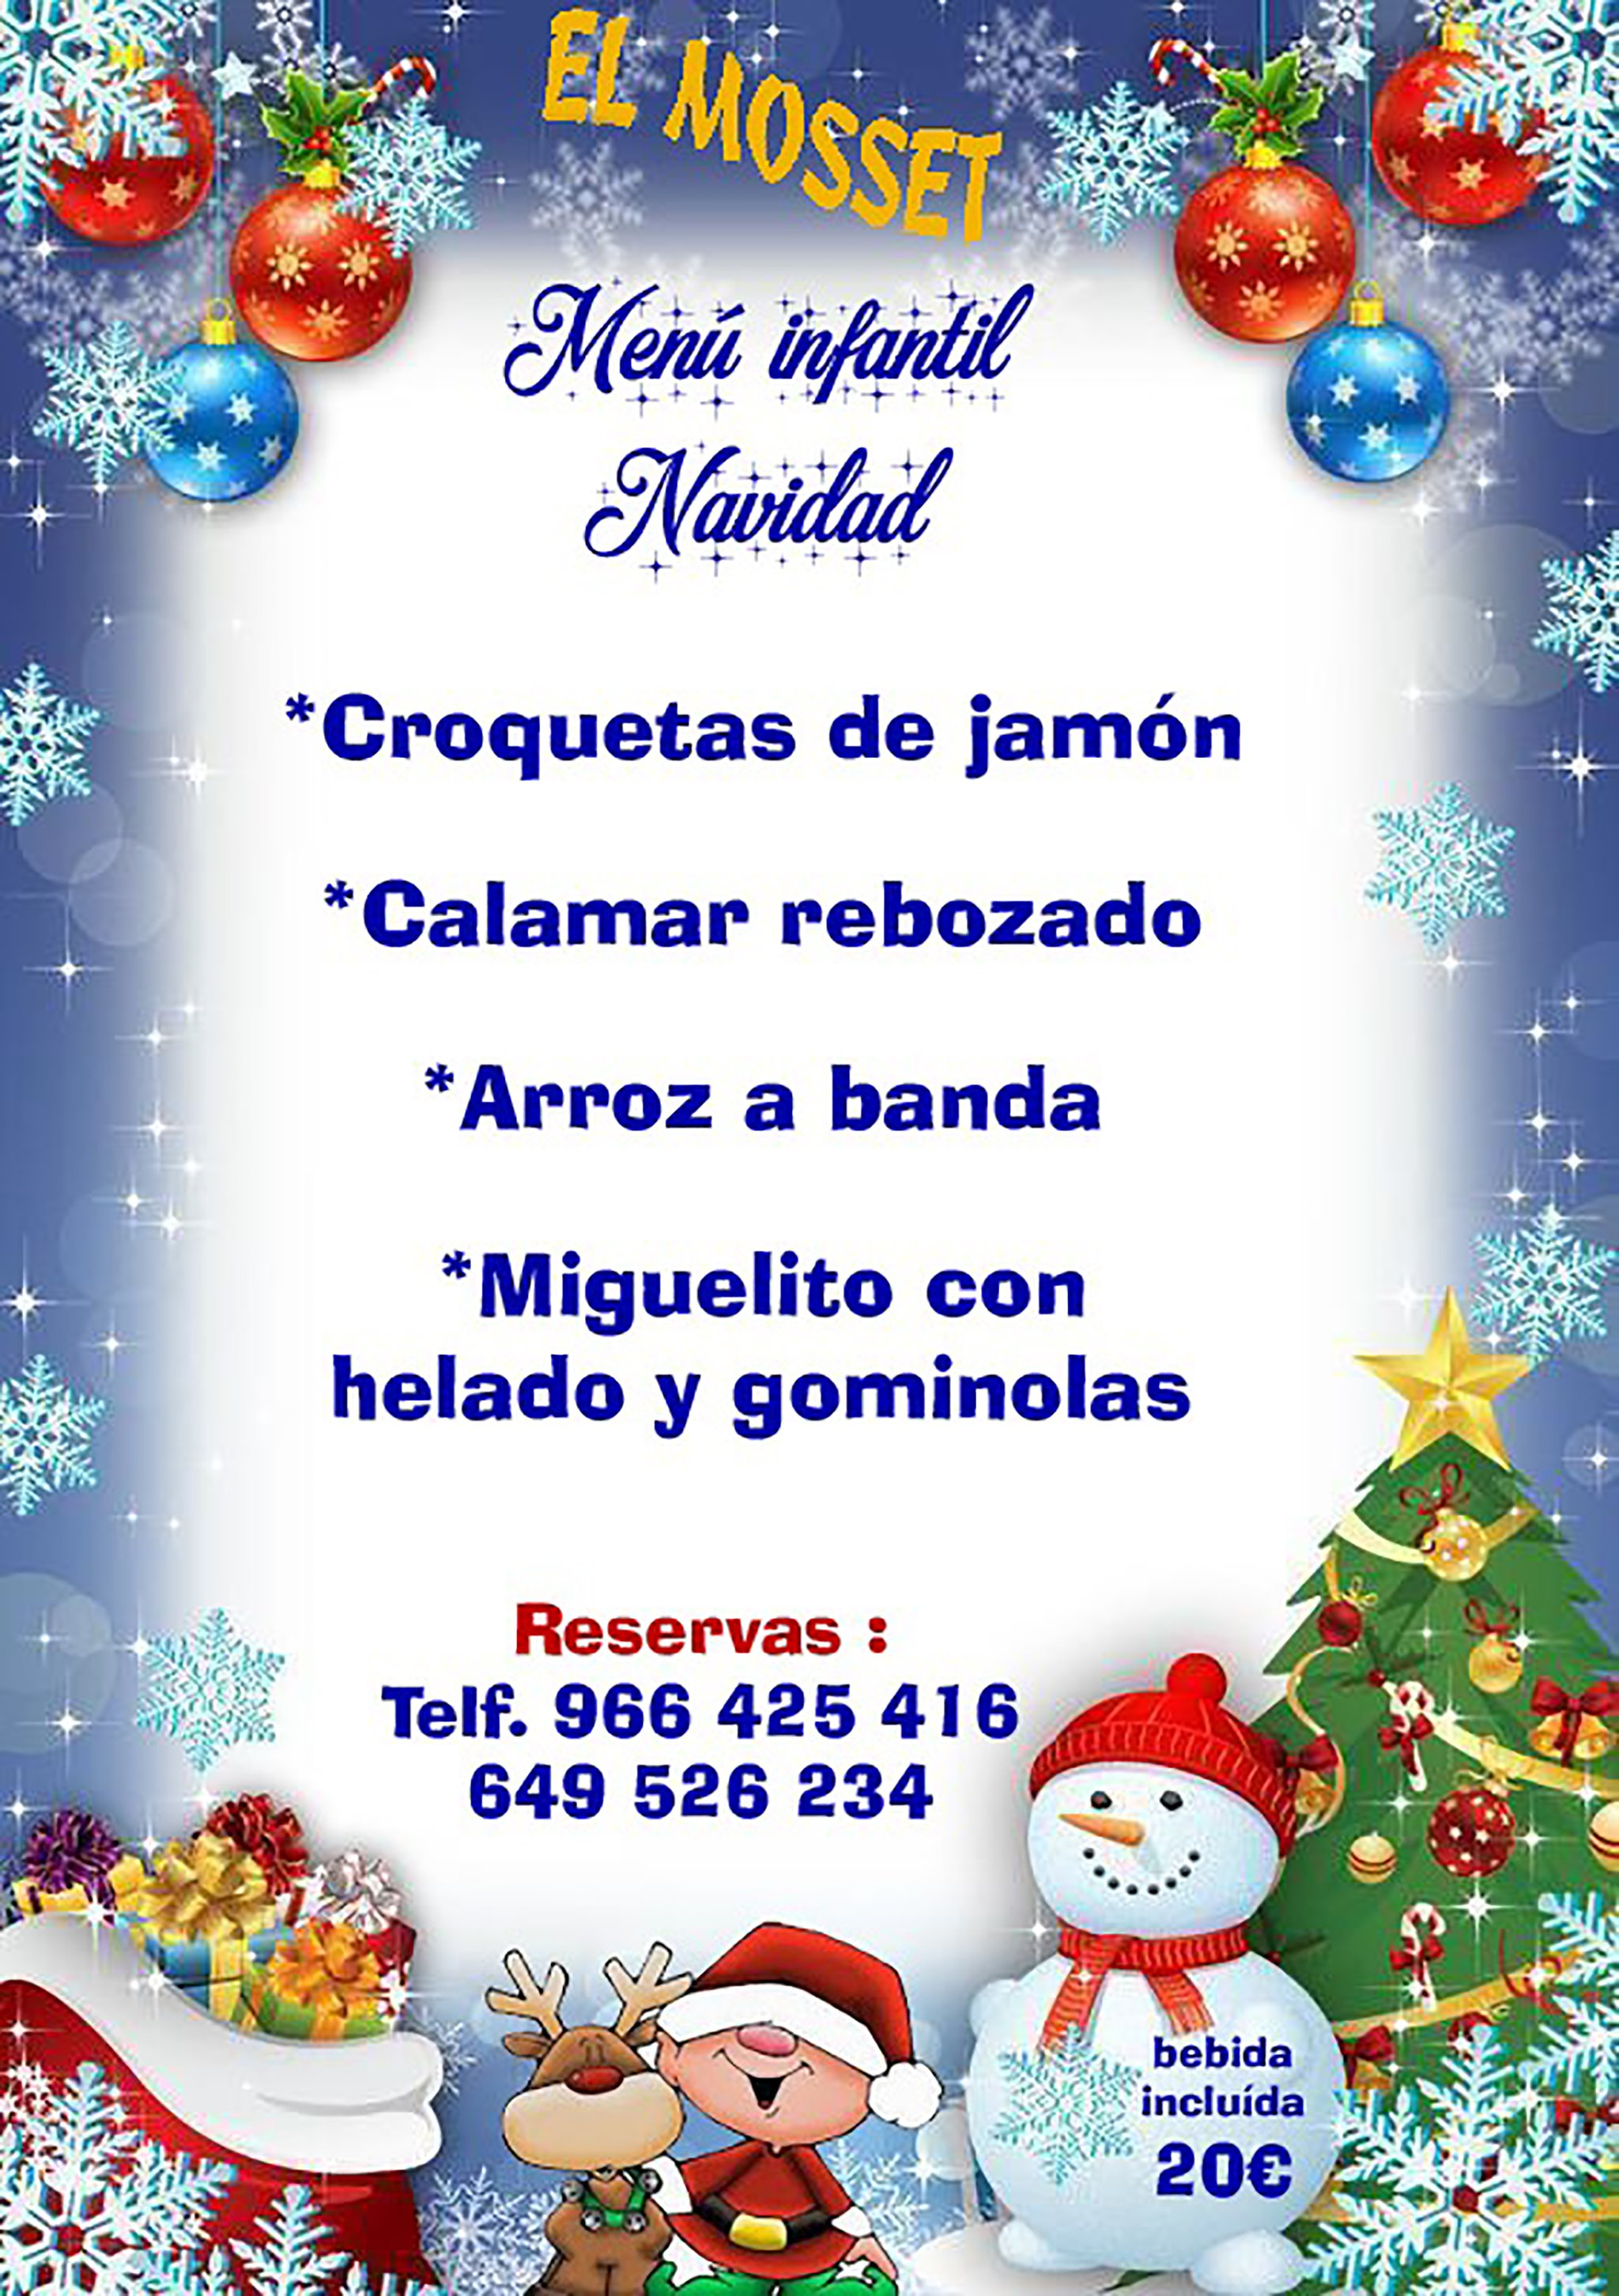 Christmas children's menu - El Mosset